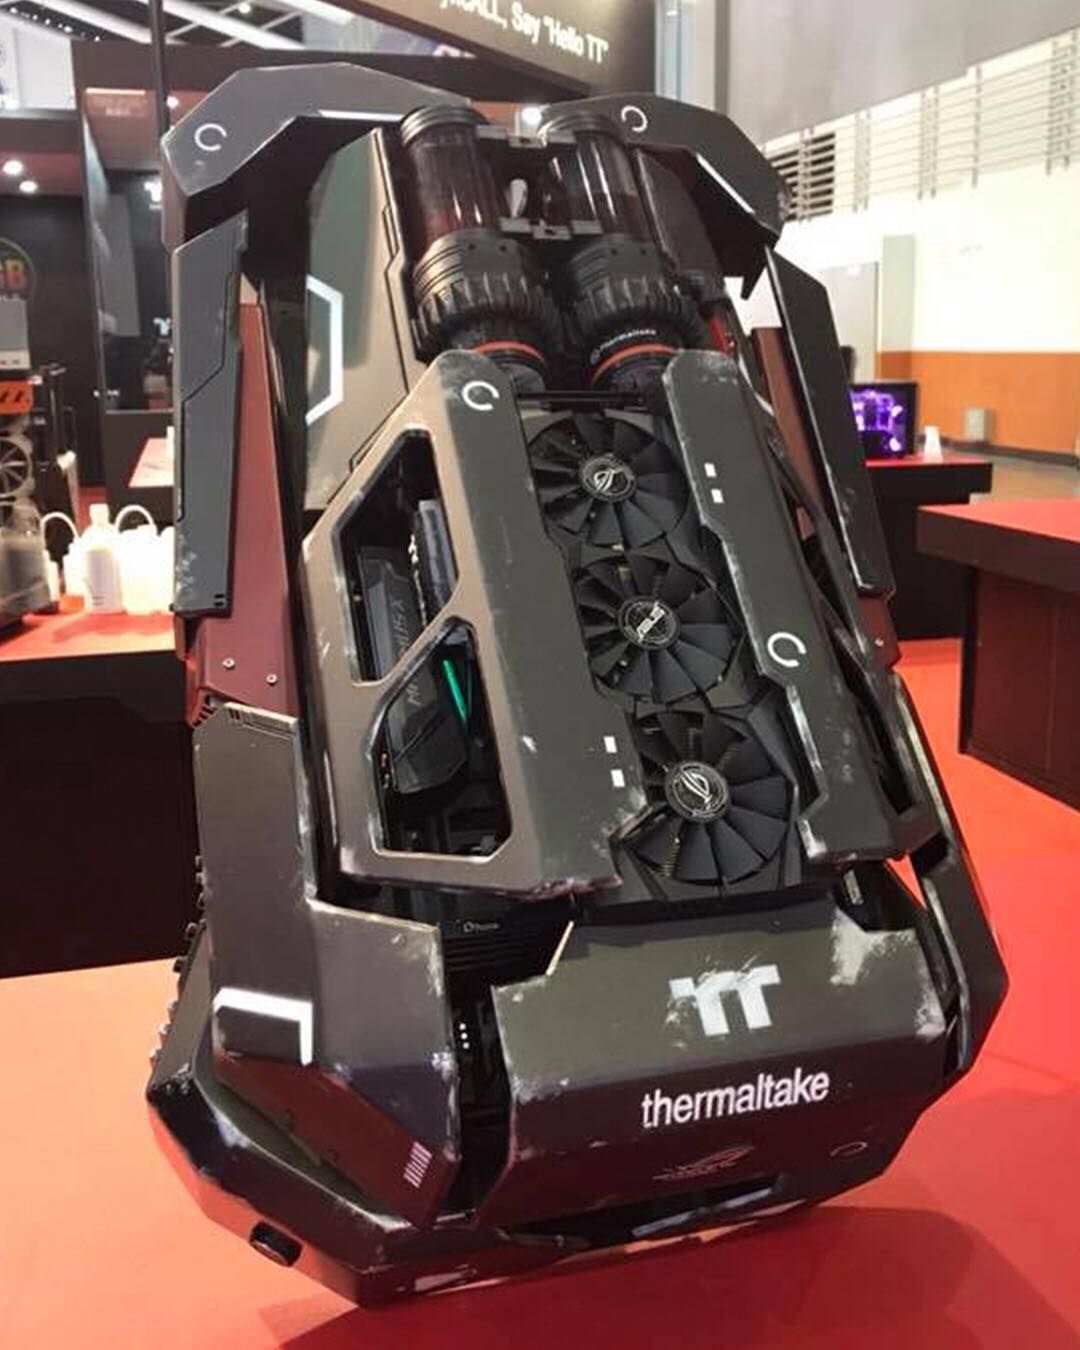 What Do You Think About This Computer Credit Thermaltake